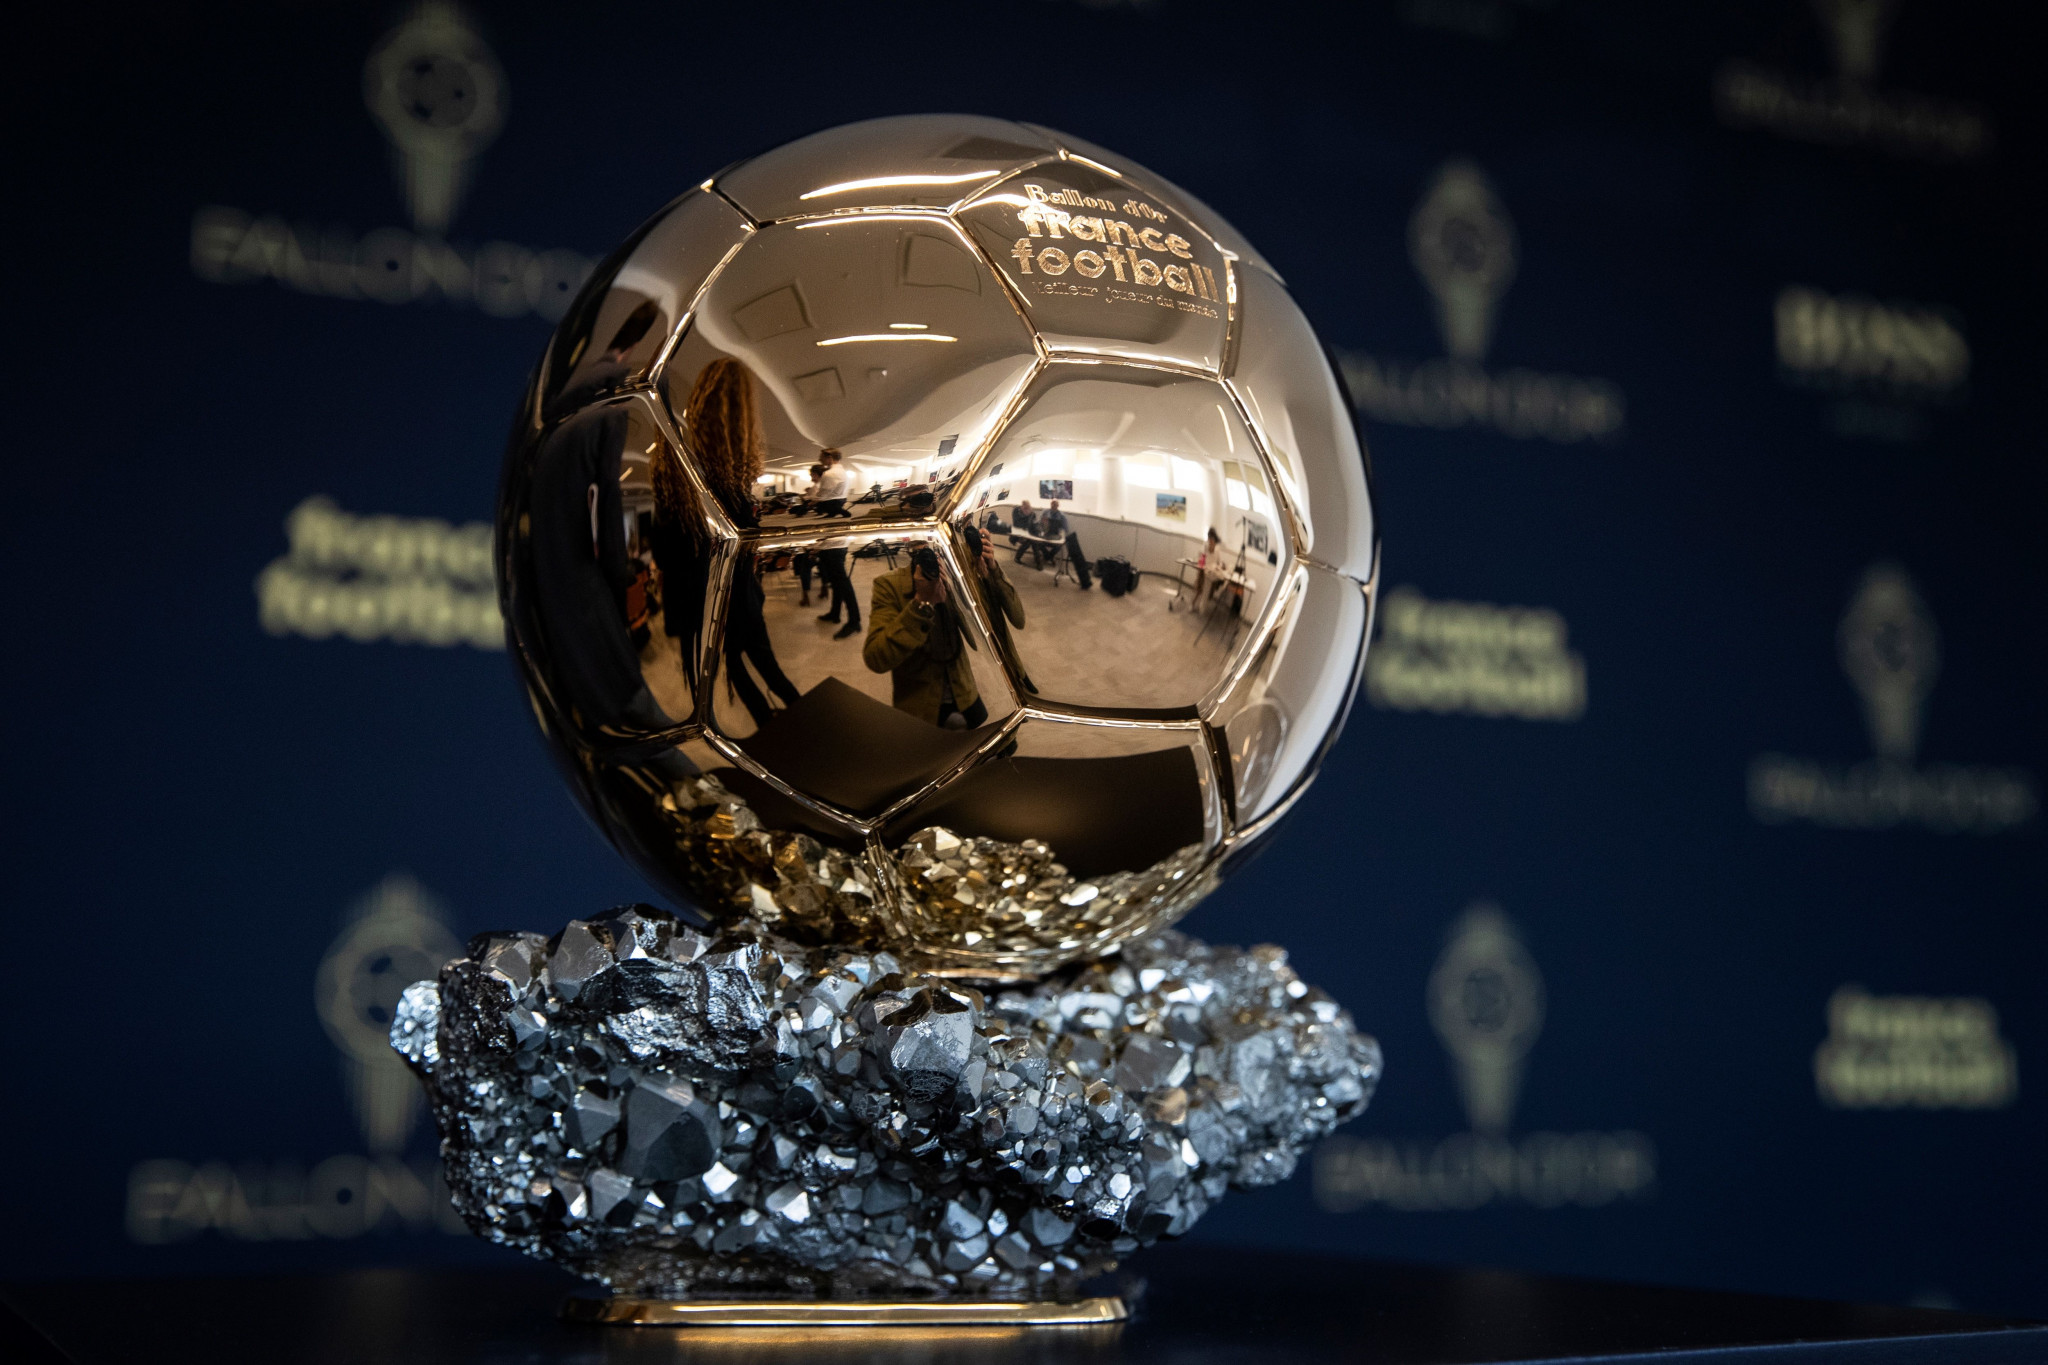 Premier League dominate men's Ballon d'Or shortlist while eight nationalities represented among women's nominees